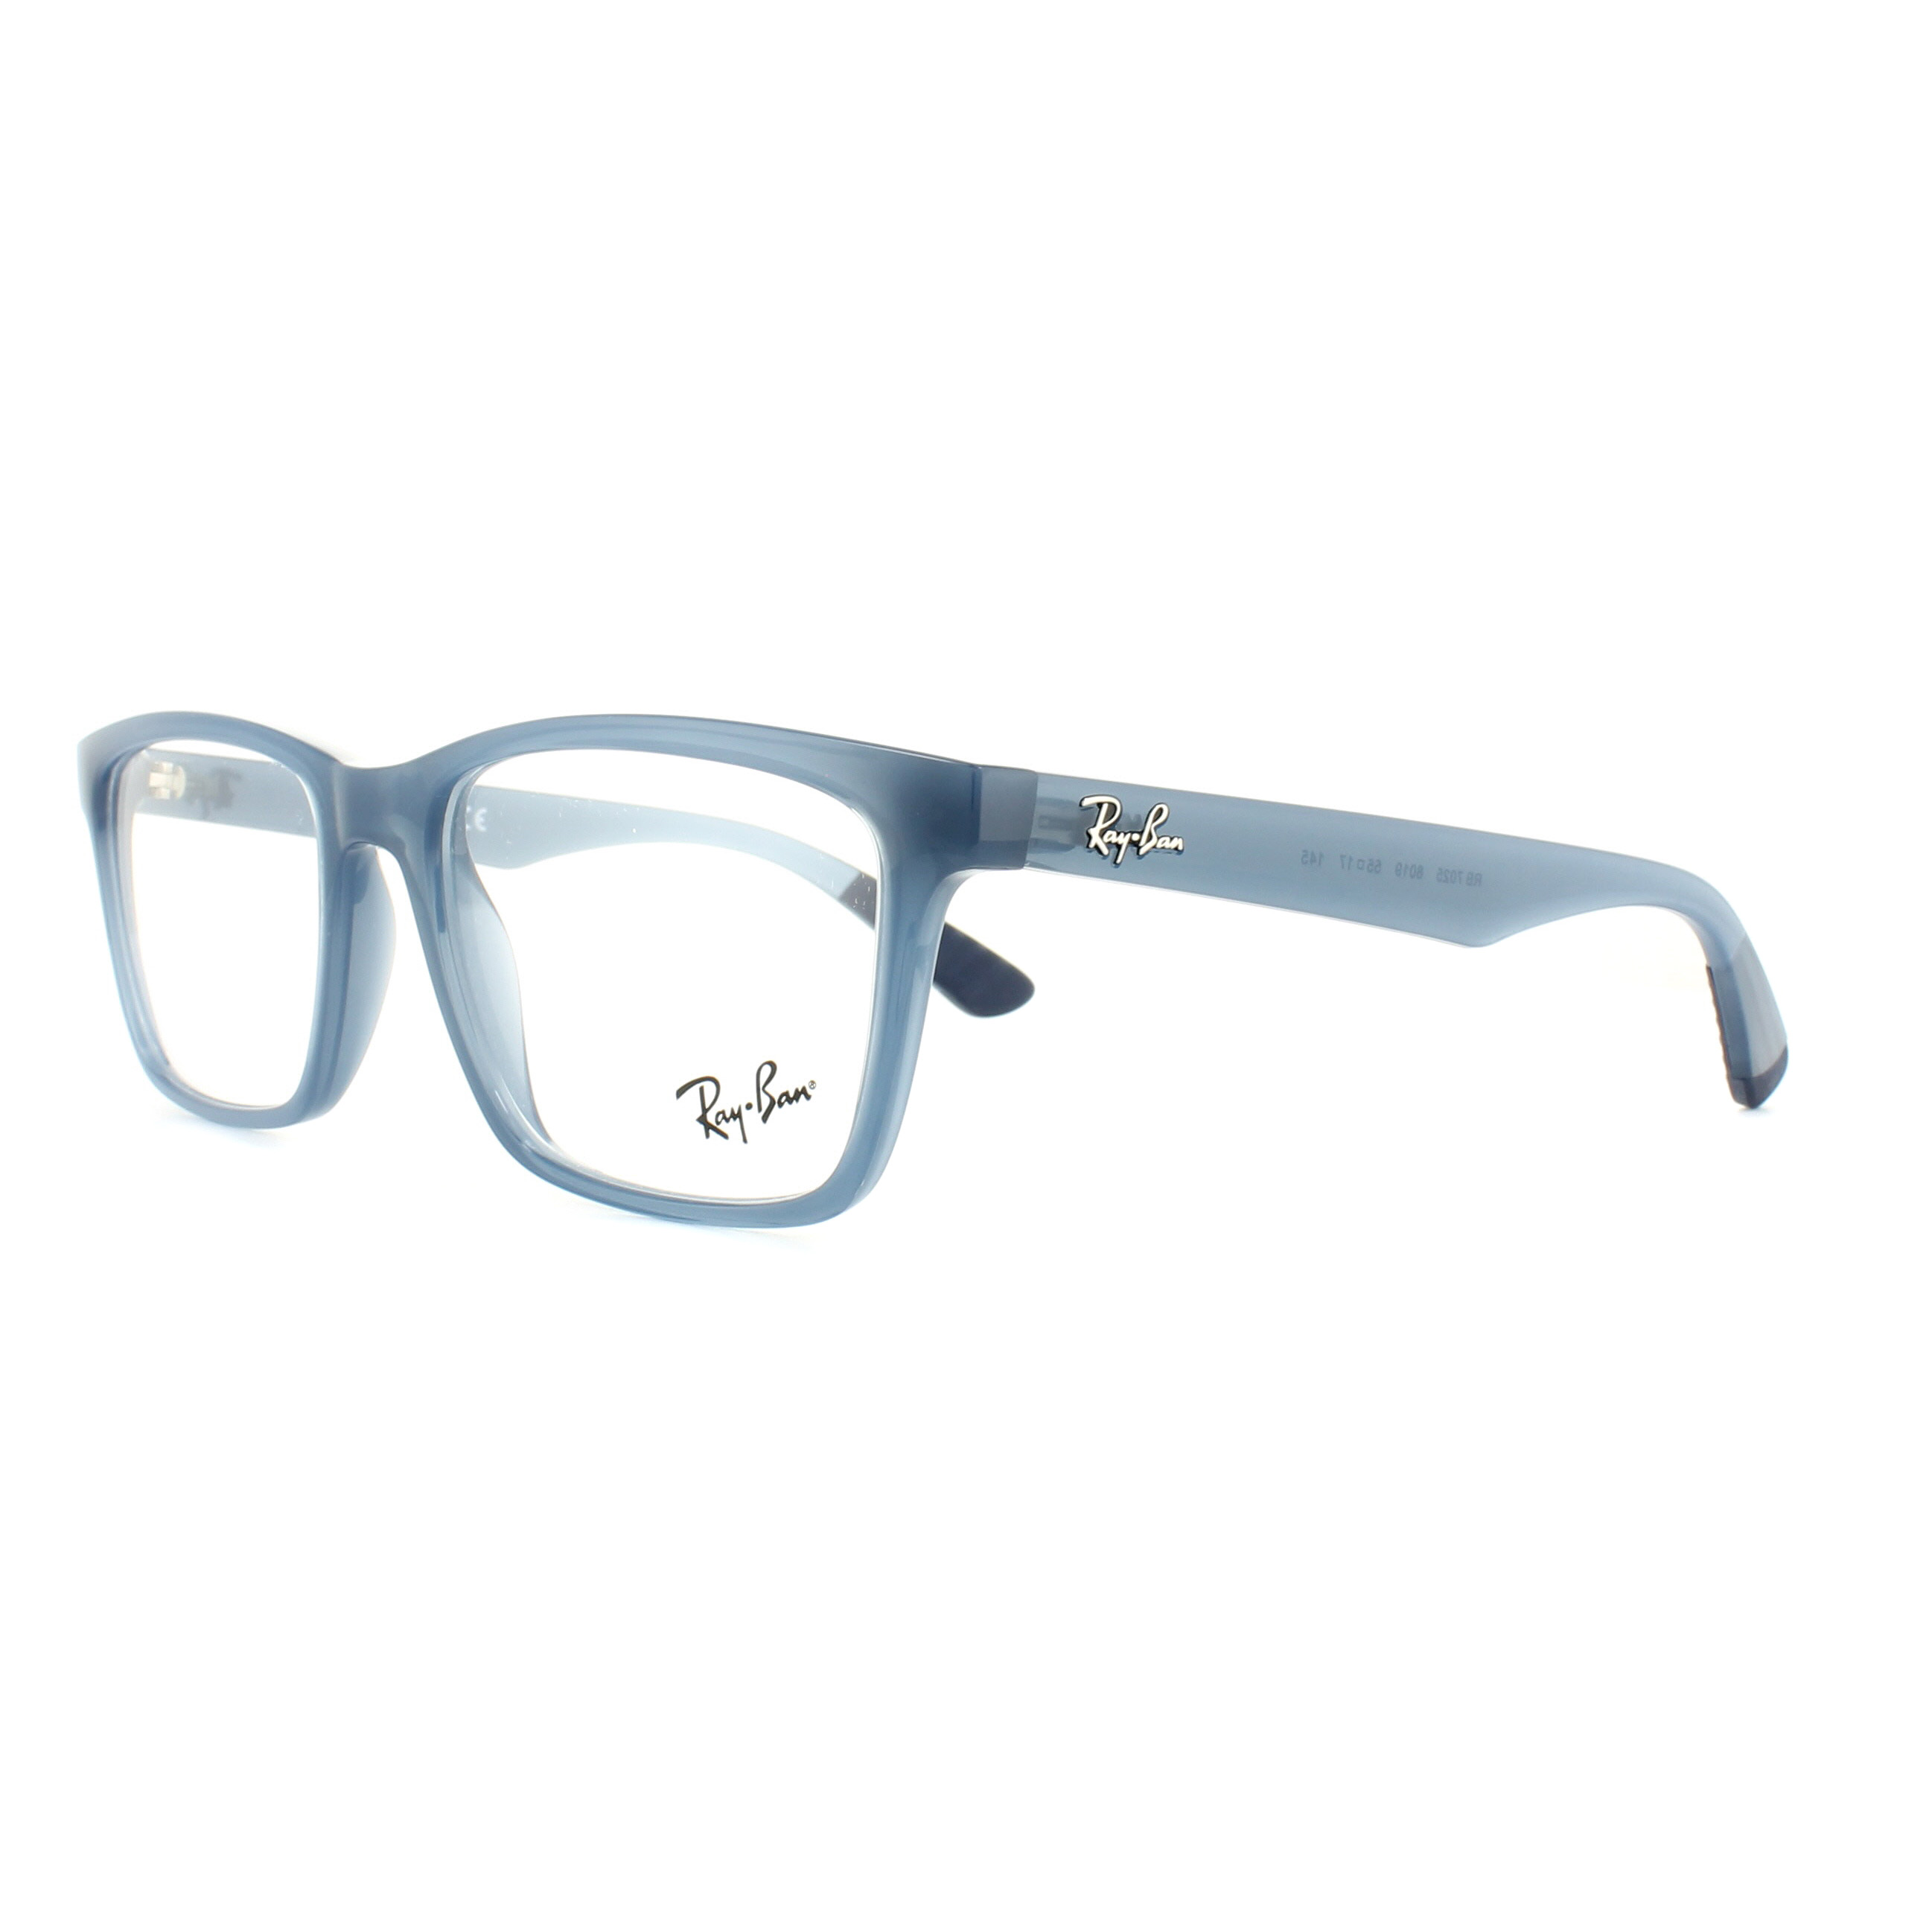 1fb27abf08 Sentinel Ray-Ban Glasses Frames 7025 8019 Transparent Light Blue 55mm Mens